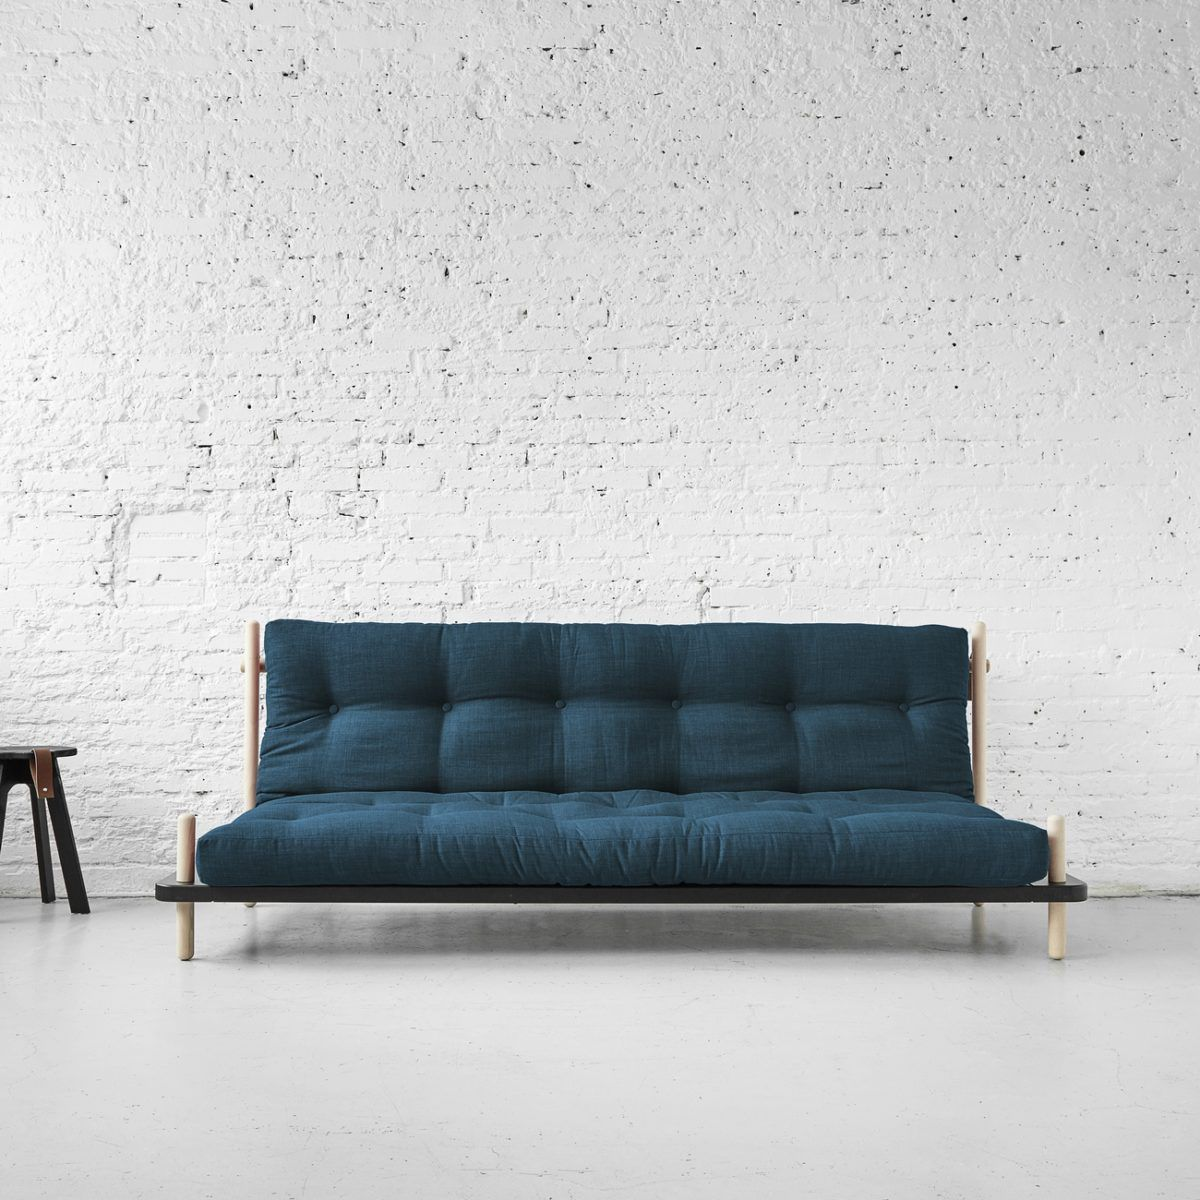 Bettsofa Japanisch Divano Karup Point Sofa Seng Stue